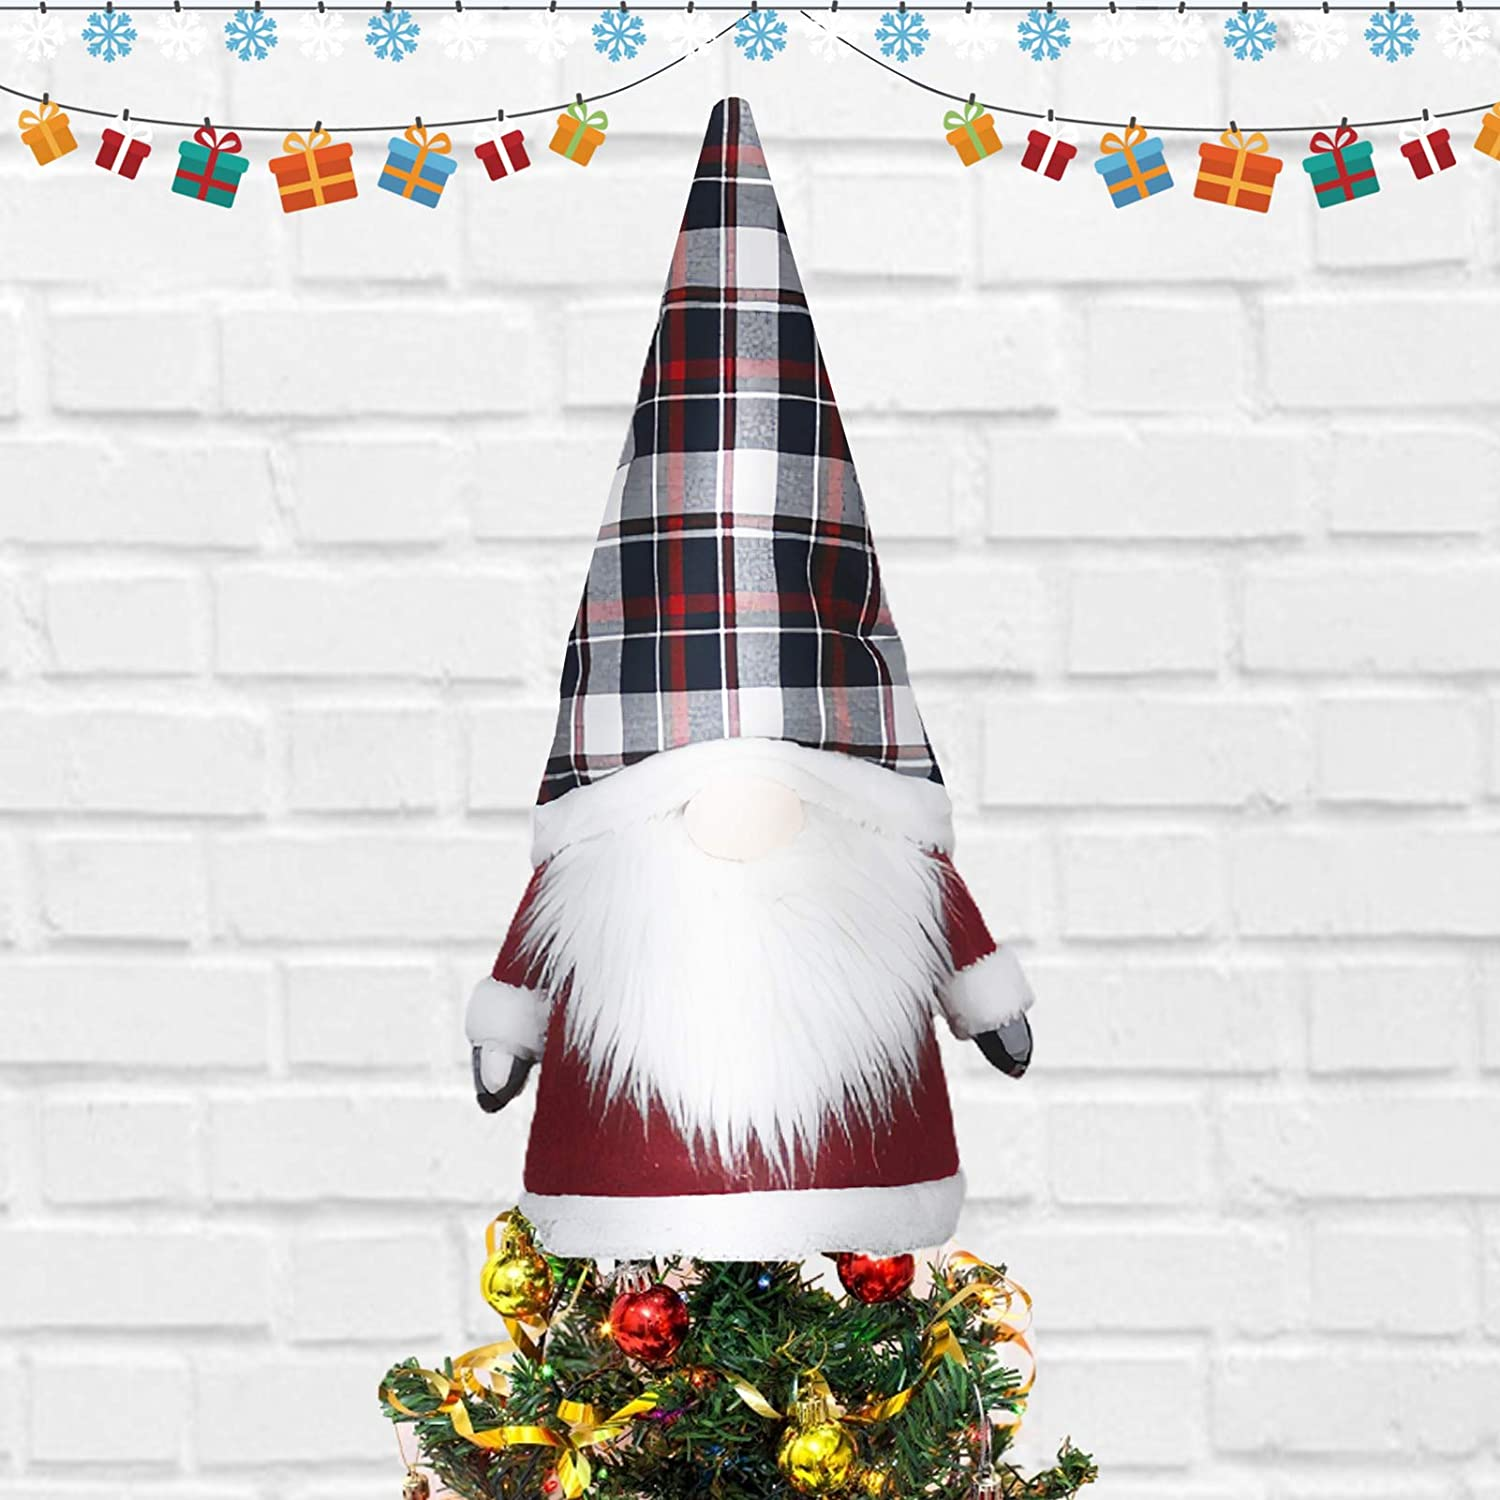 VARWANEO Gnomes Christmas Tree Topper Star Christmas Decorations Clearance 25 Inch Large Swedish Tomte Black Christmas Tree Ornaments Gnome Plush Scandinavian Santa Thanksgiving Home Decor